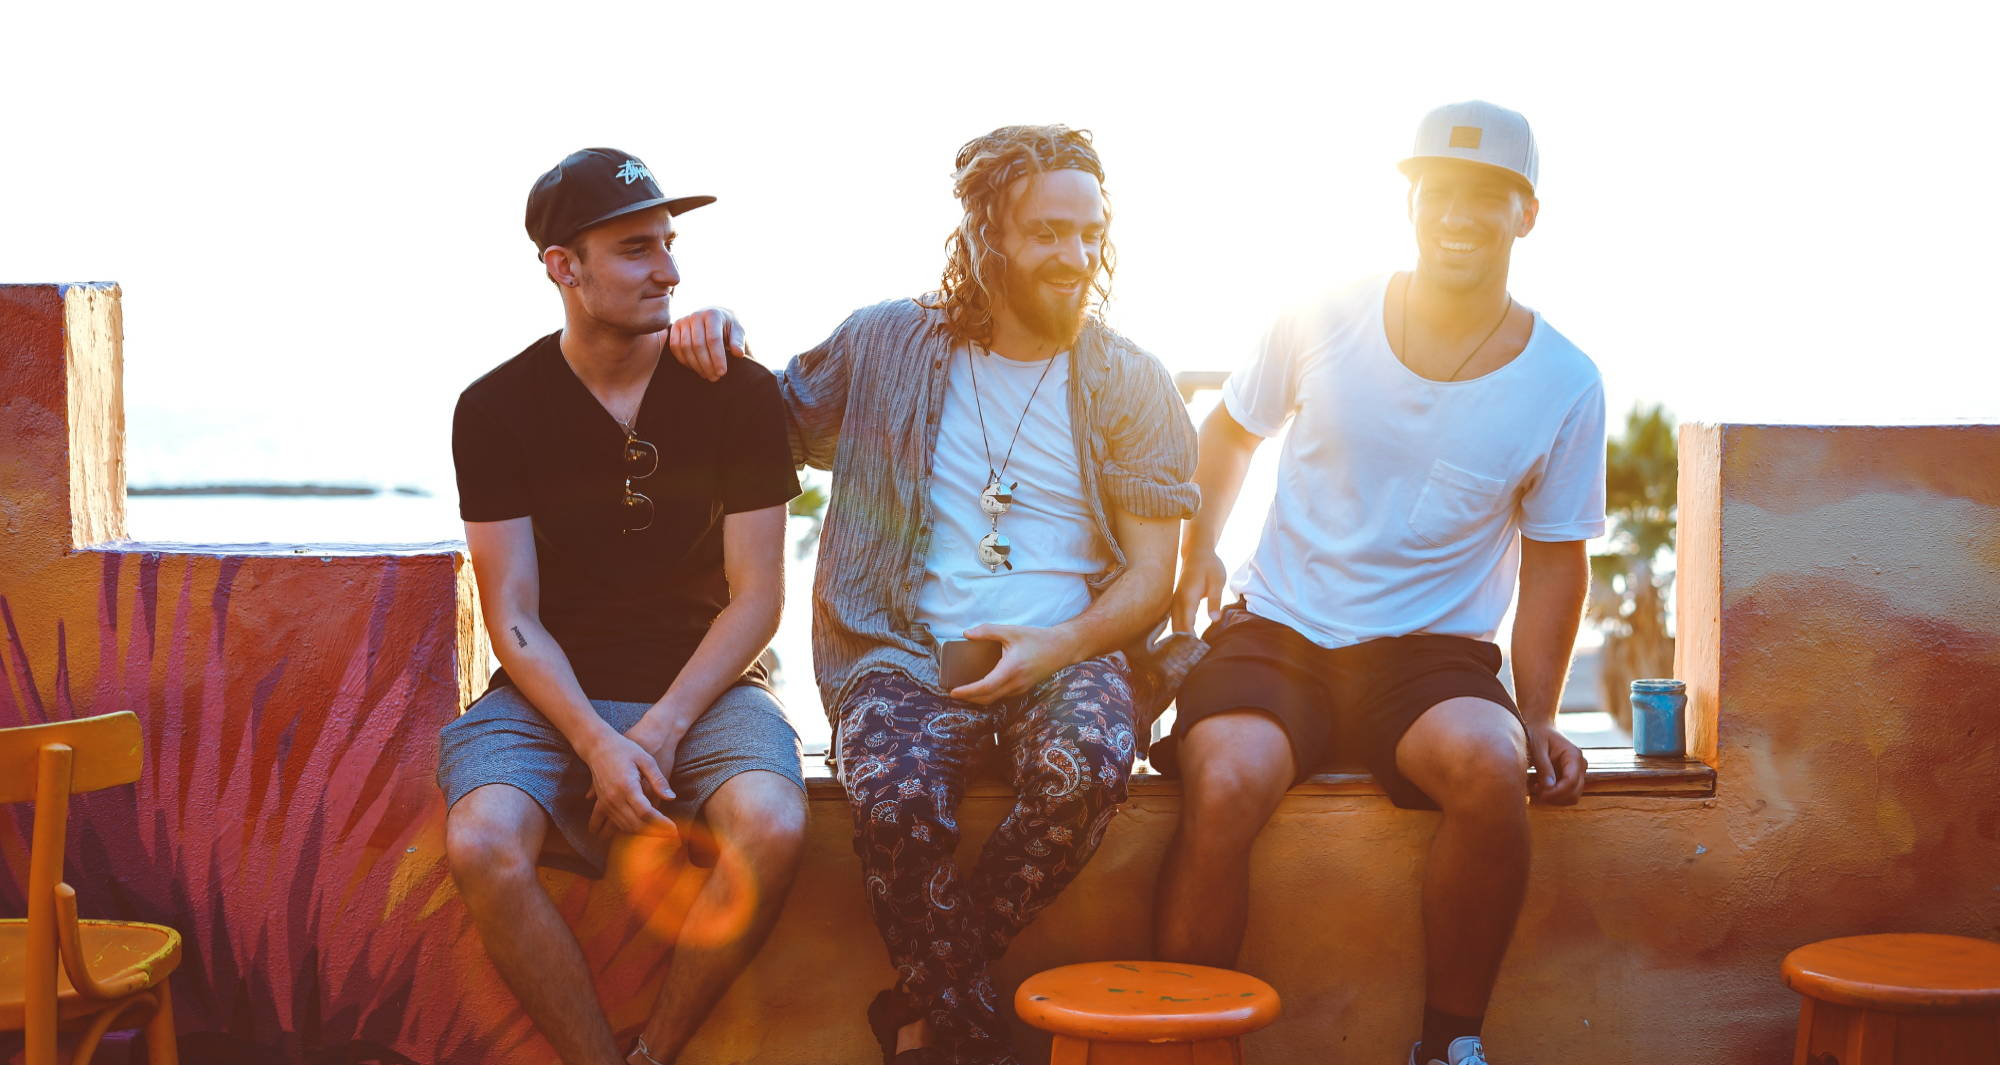 Three men sit on a wall in sustainable mens clothing and talk while the sun sets behind them.